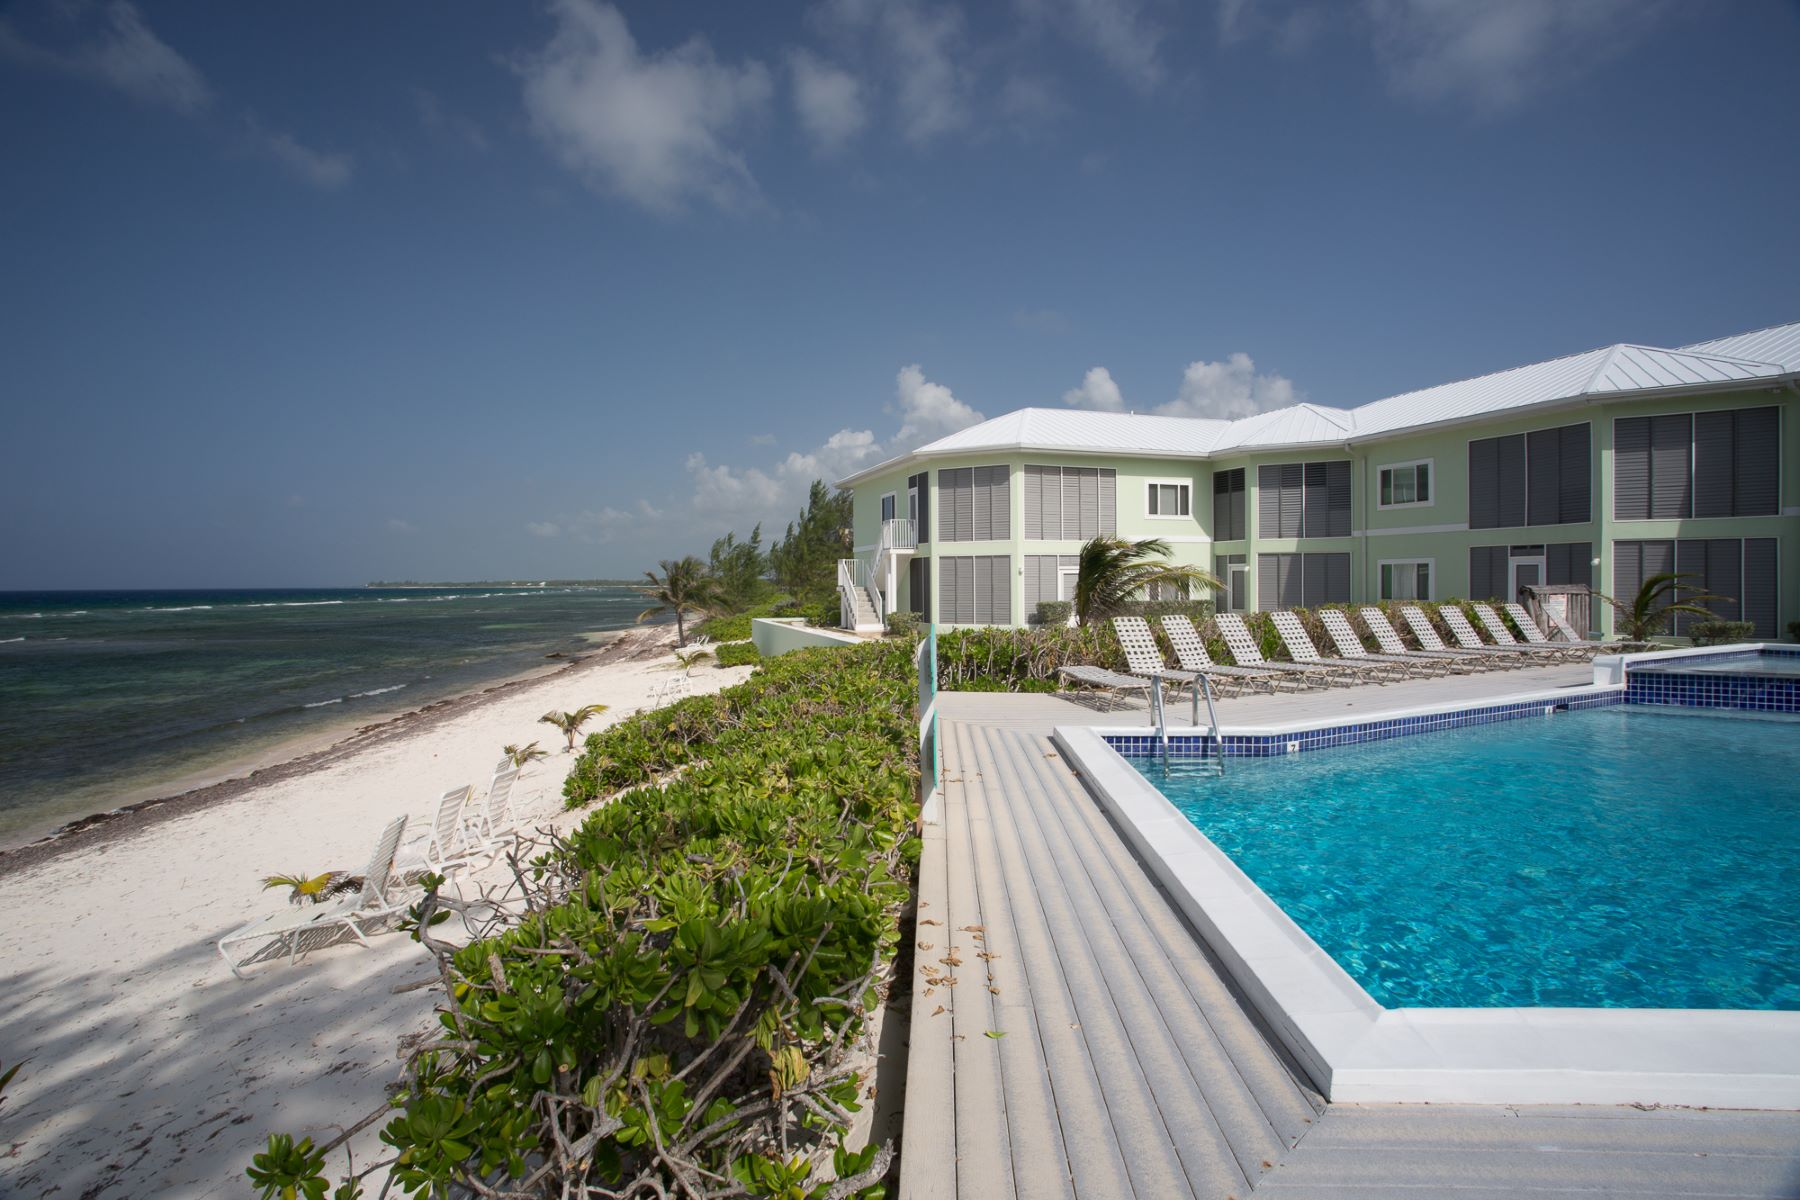 Condominium for Sale at North Pointe Condos Rum Point, Cayman Islands